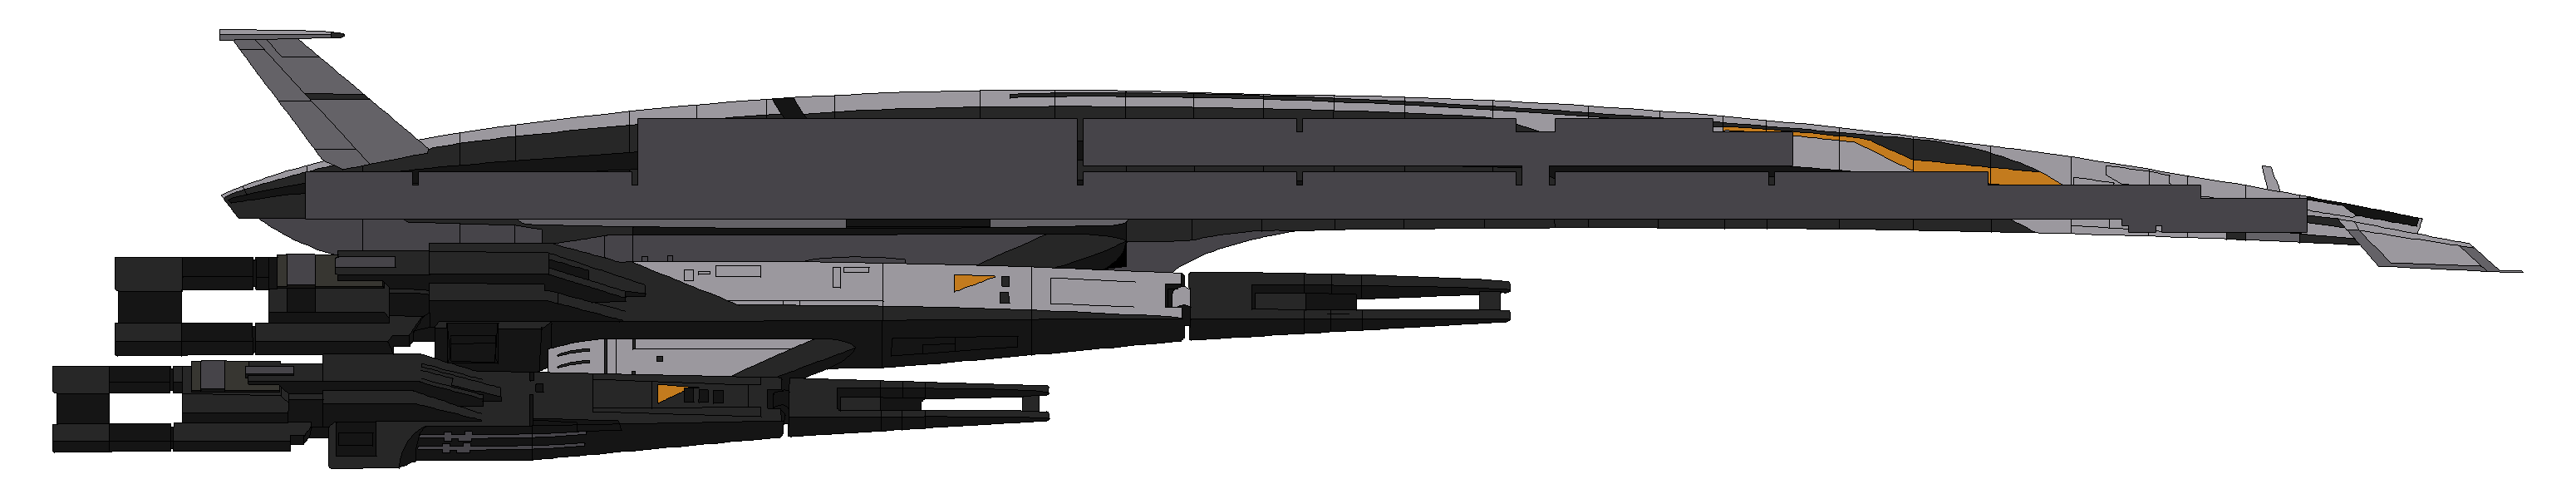 Mass effect normandy png. Sr wip by delos